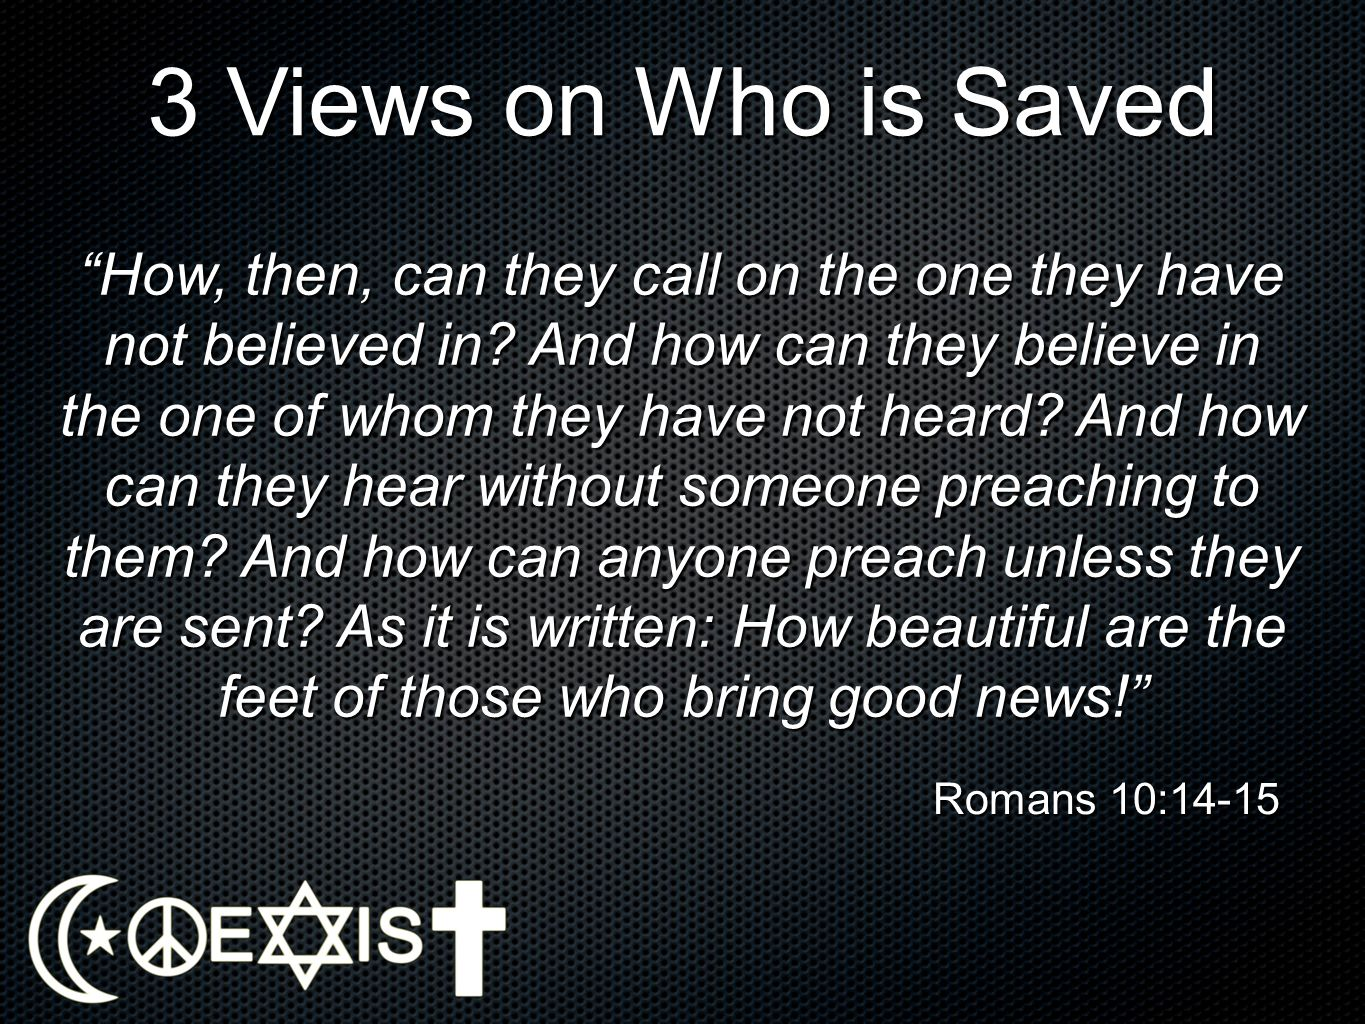 3 Views on Who is Saved How, then, can they call on the one they have not believed in? And how can they believe in the one of whom they have not heard